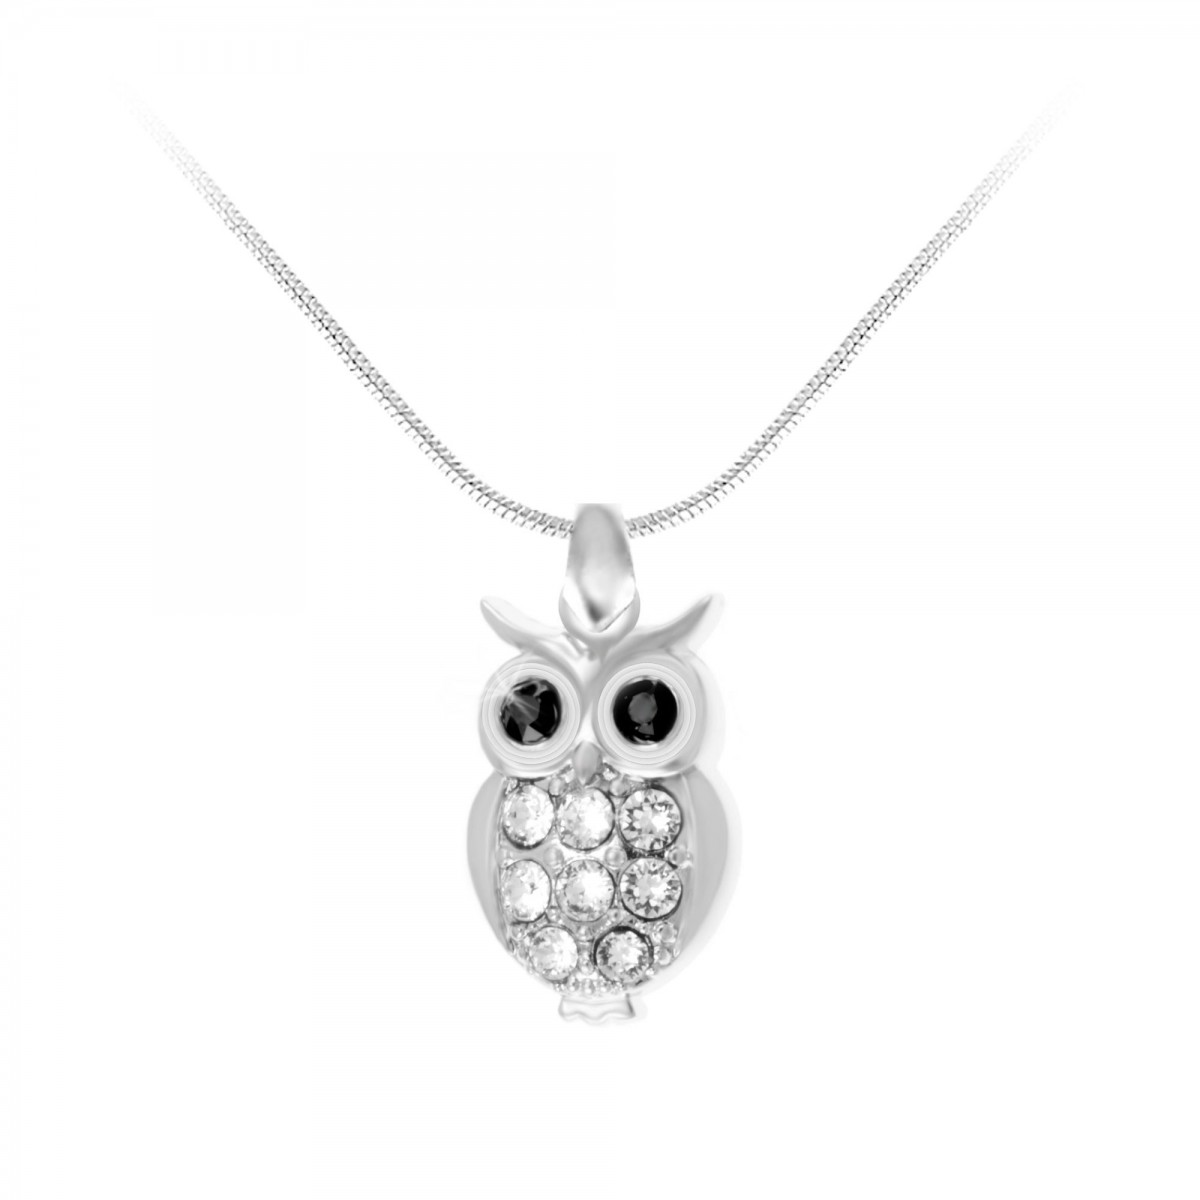 CH0301-ARGENT-SN016 Collier hibou So Charm made with crystals from Swarovski